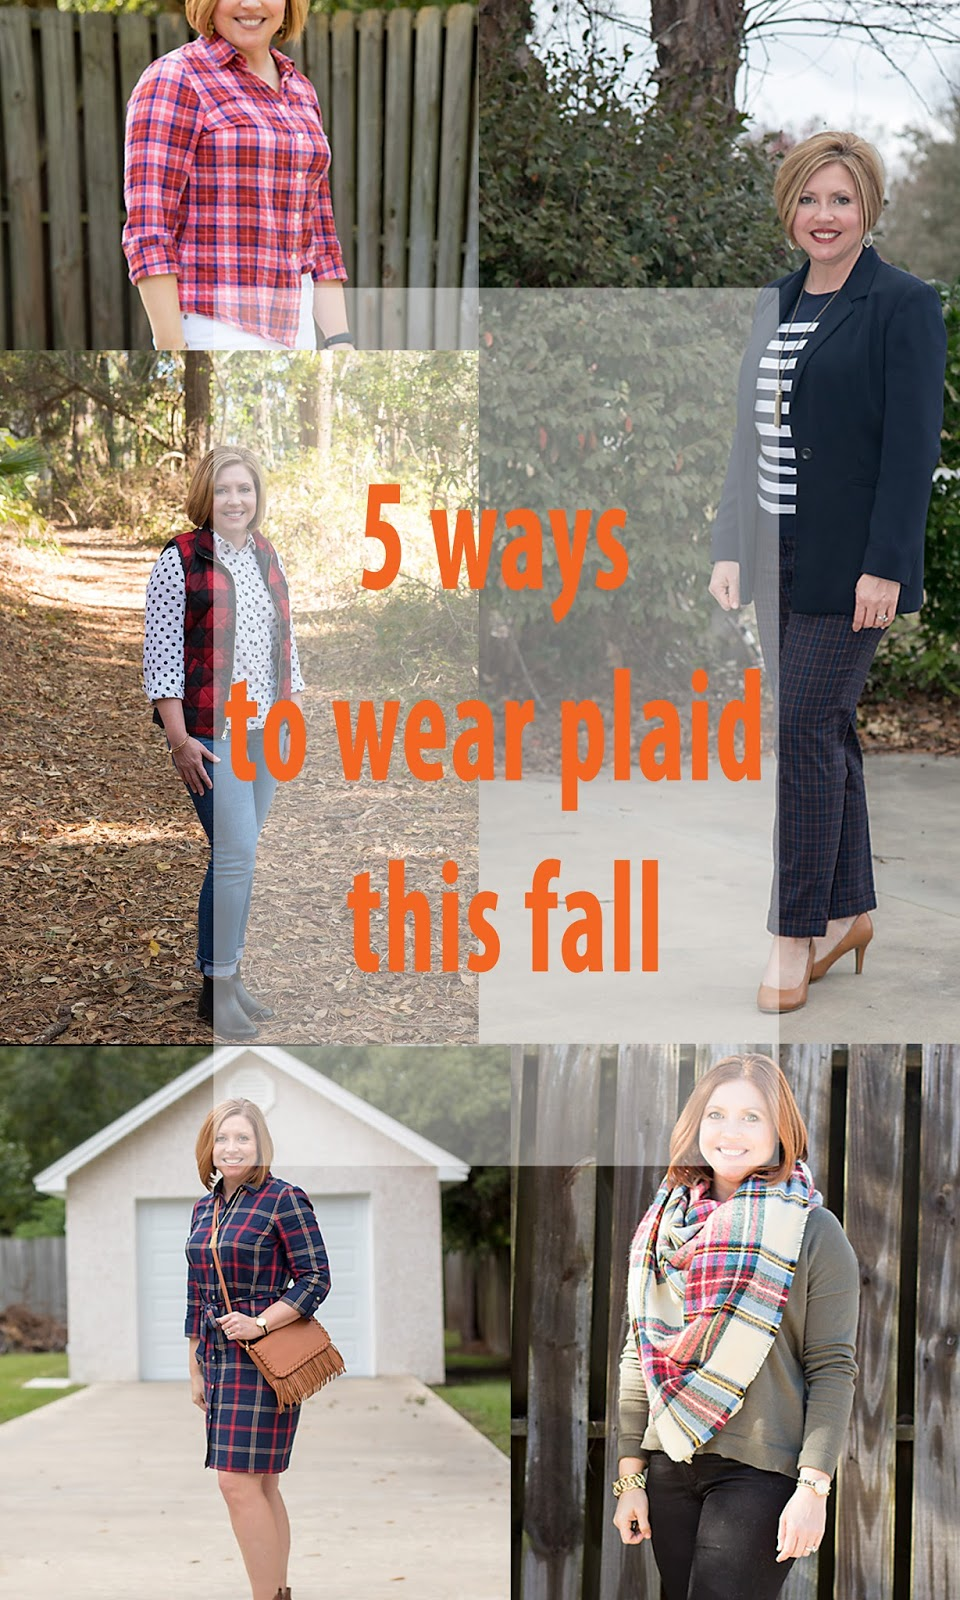 5 ways to wear plaid this fall, fall outfits, plaid shirt outfit